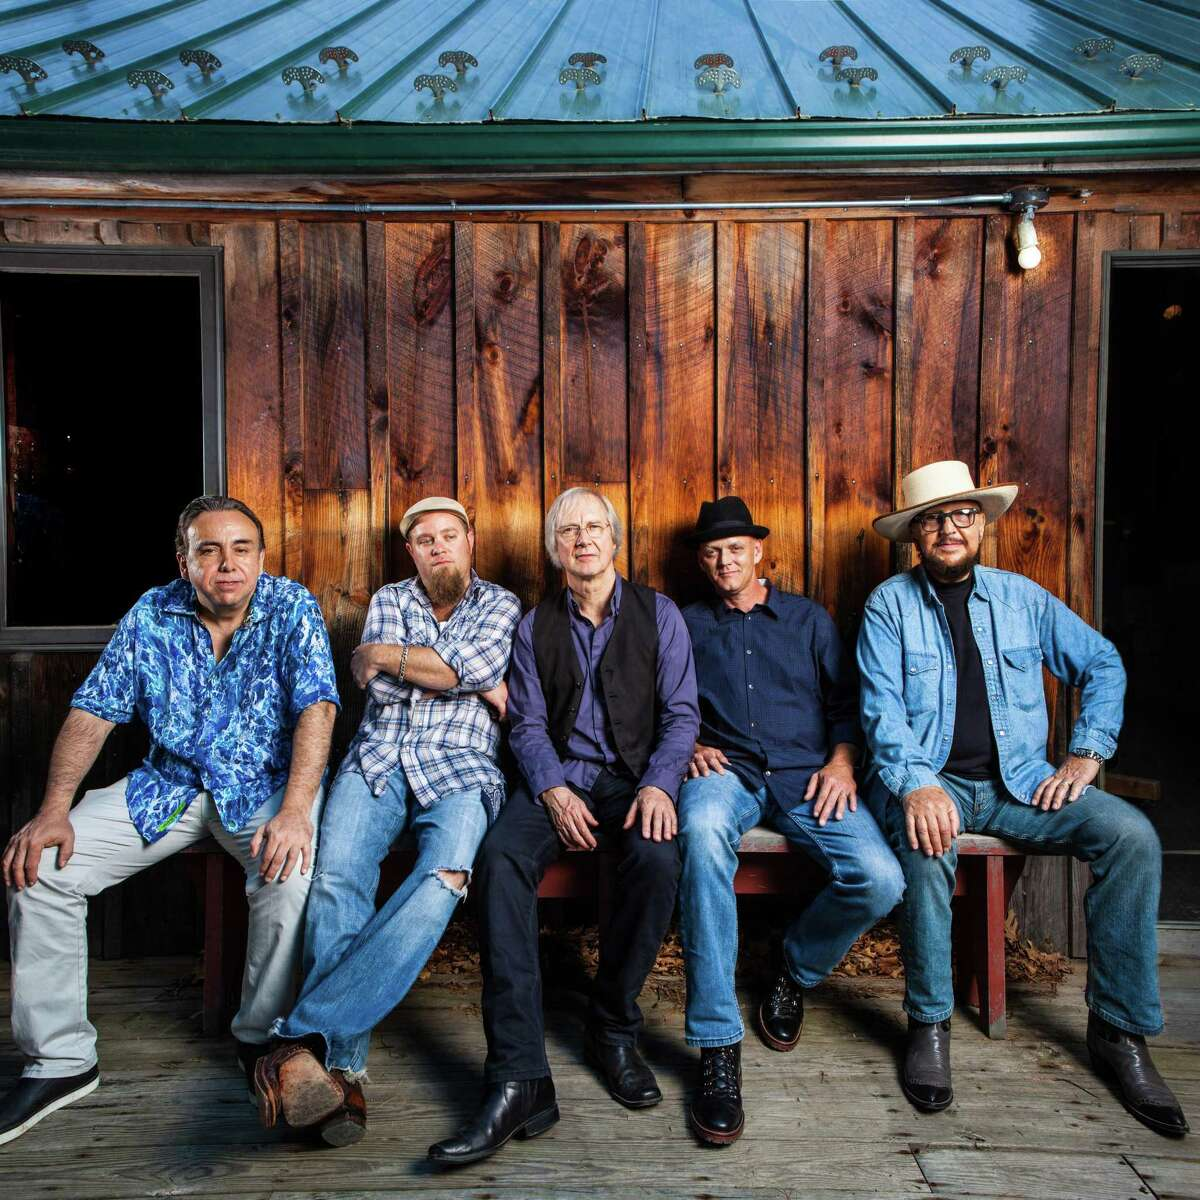 The Weight Band will perform at The Warehouse at Fairfield Theatre Company on Feb. 10, and at Hartford's Infinity Music Hall on Feb. 16. Brian Mitchell, left, Michael Bram, Jim Weider, Albert Rogers and Marty Grebb.